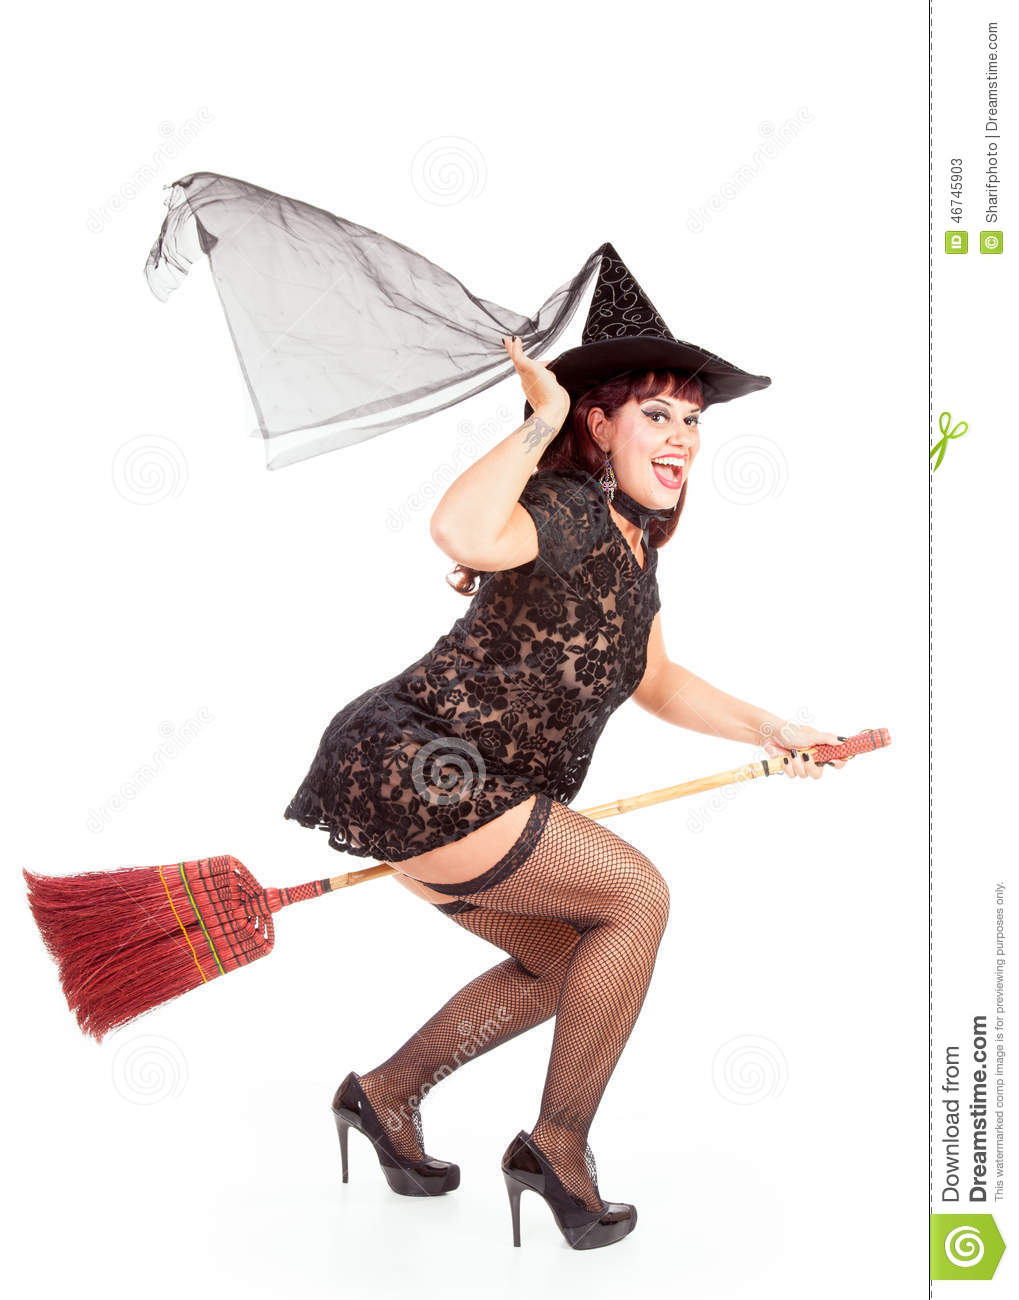 Fly-by Of A Witch On A Broom Stock Photo - Image: 46745903